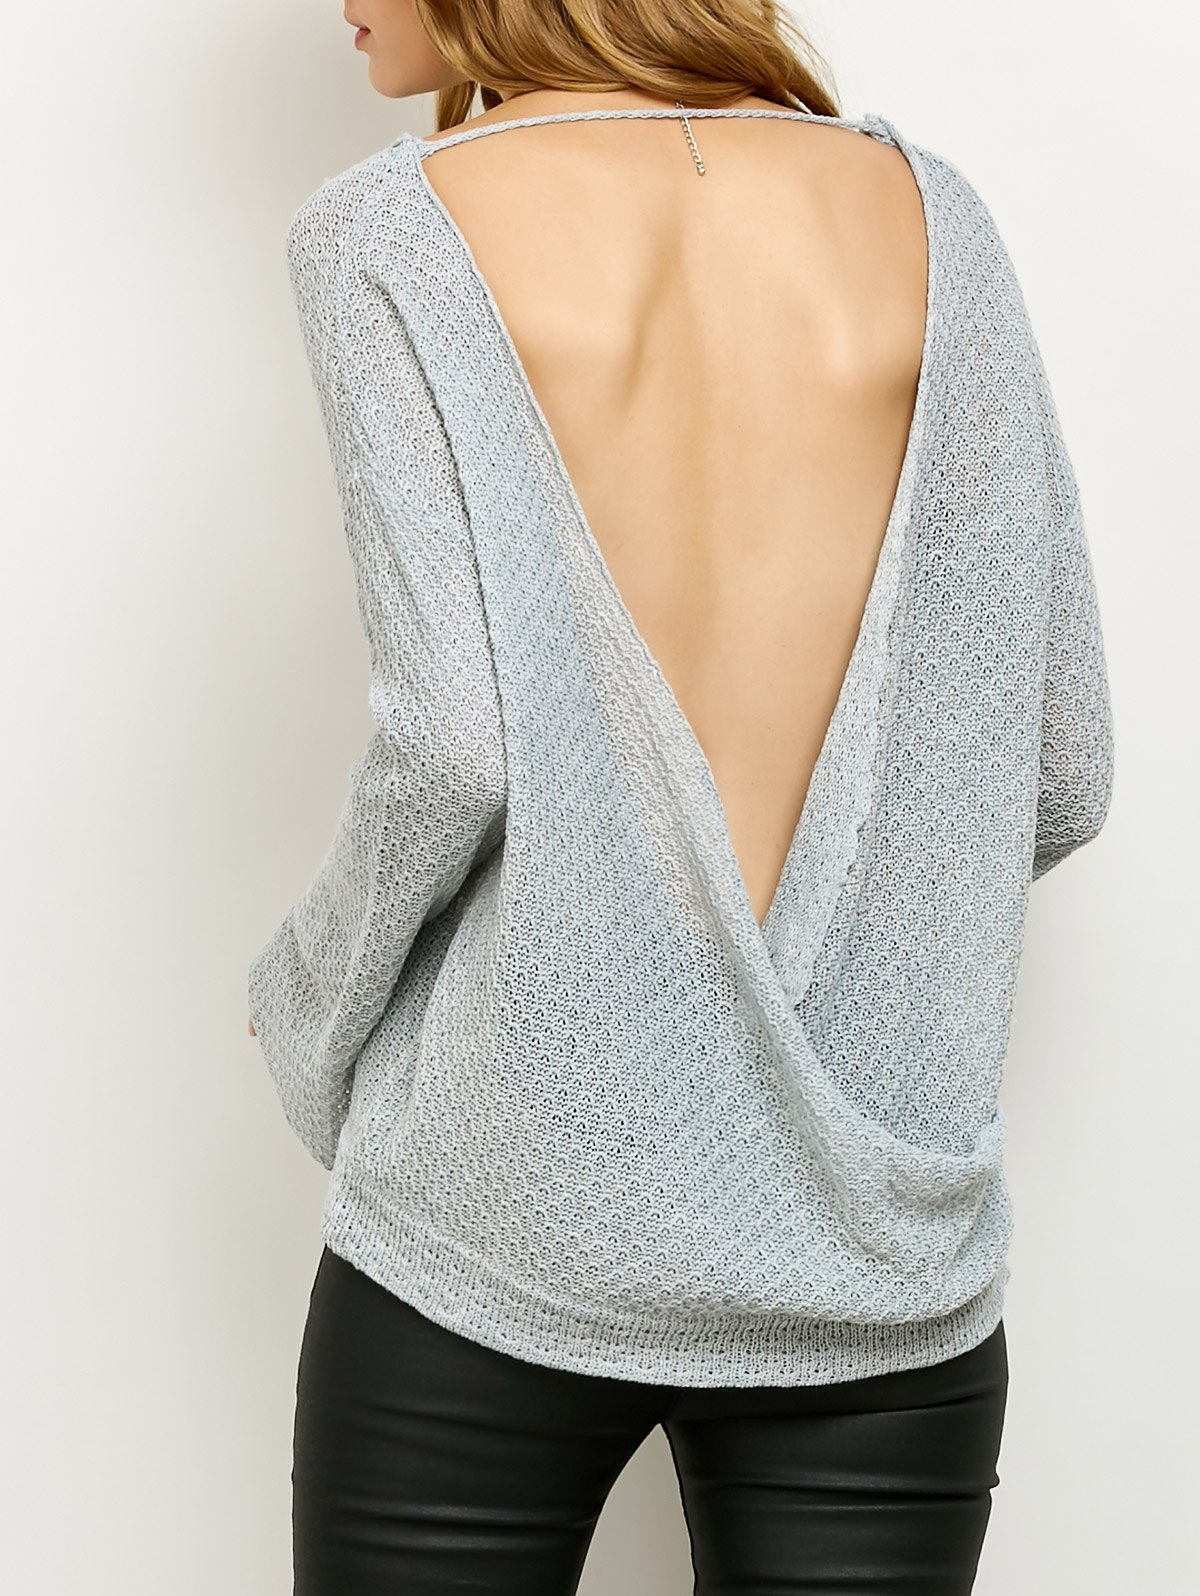 Cut Out Wrap Knitwear 200897402